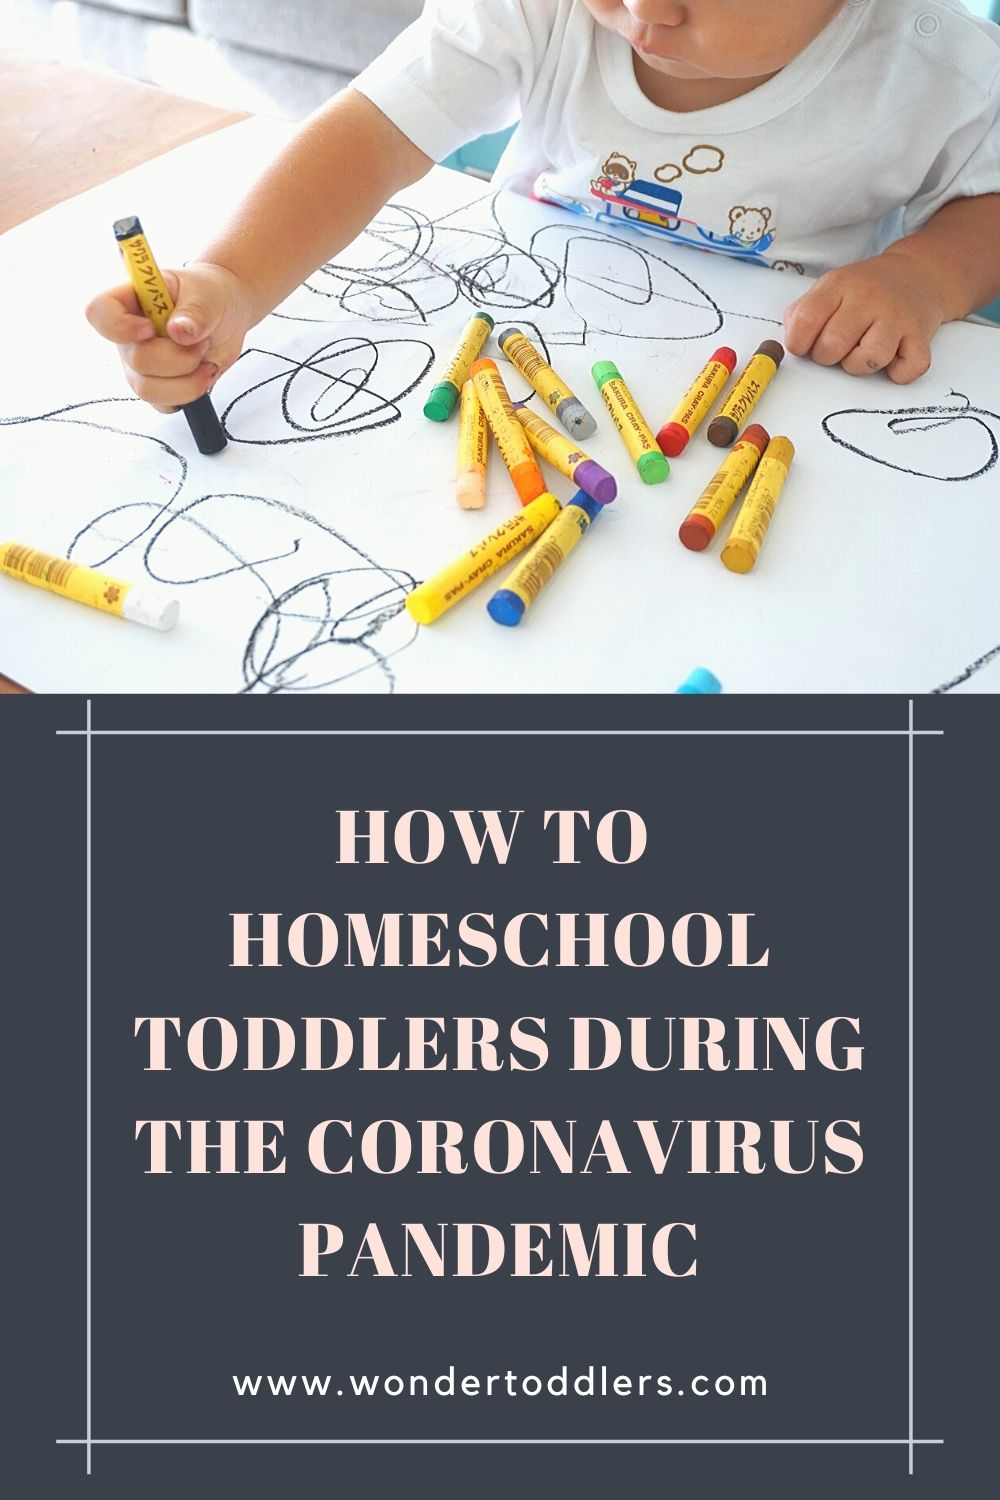 How to homeschool toddlers during the coronavirus pandemic